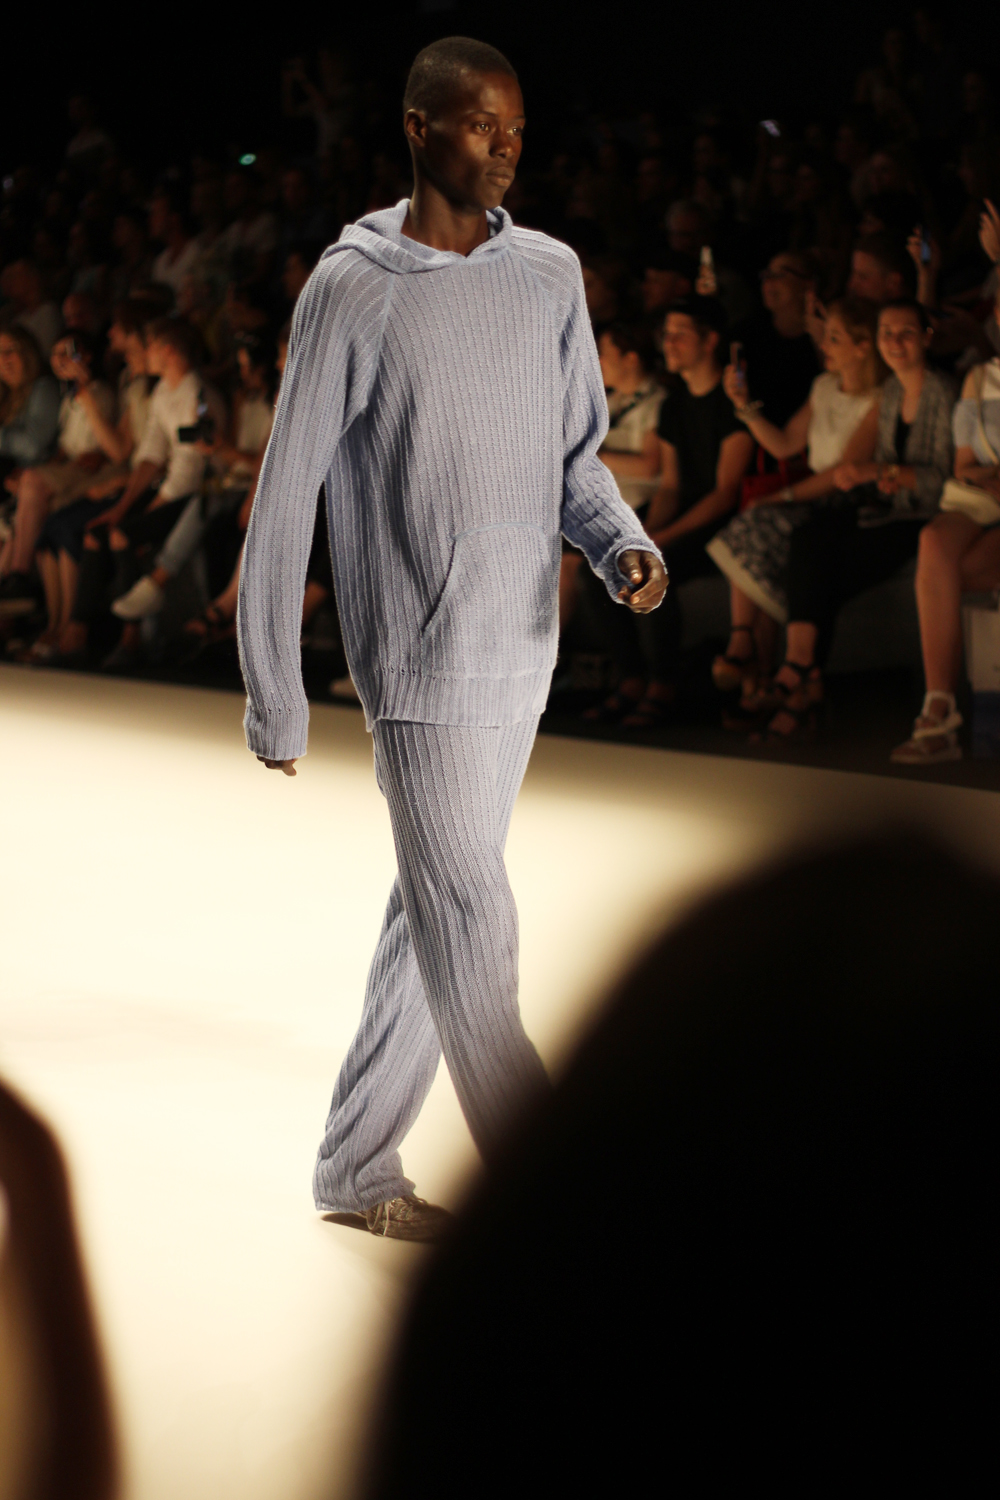 fatimayarie-berlinfashionweek-julianzigerli-menswear-runway-blue-jumper-img_4237